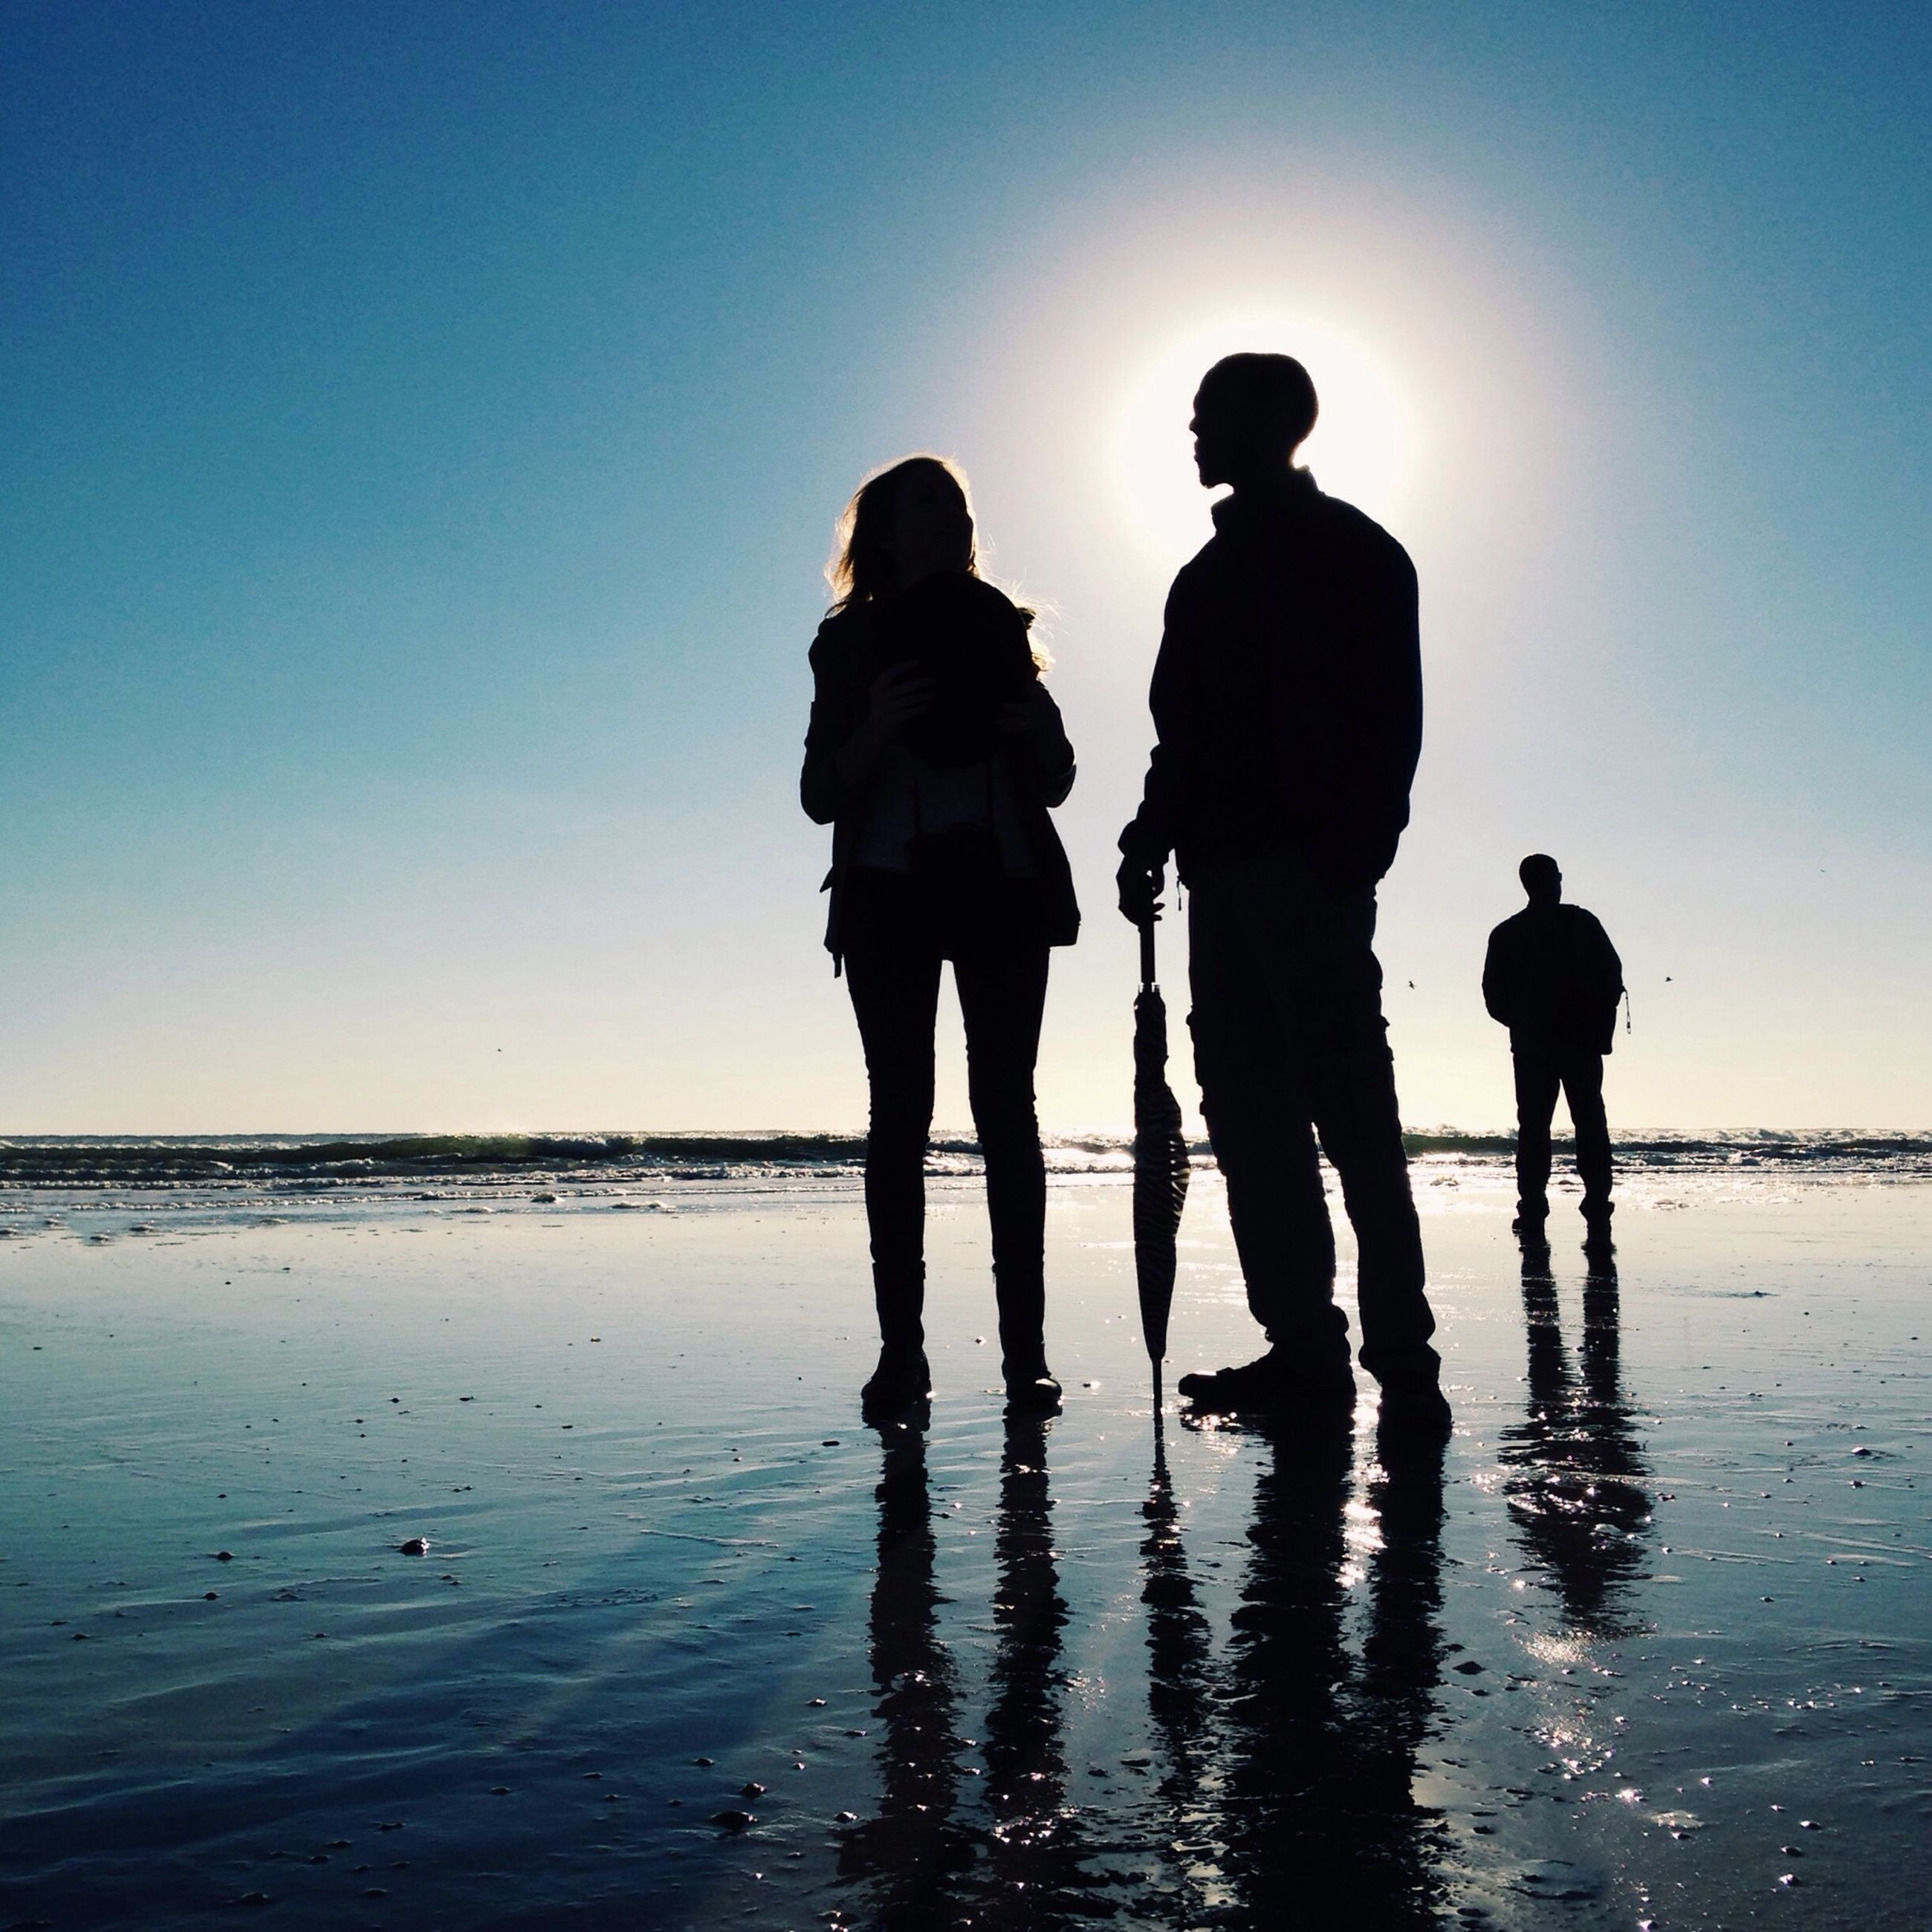 water, silhouette, sea, togetherness, clear sky, men, beach, leisure activity, lifestyles, standing, sunset, full length, reflection, shore, copy space, bonding, vacations, tranquility